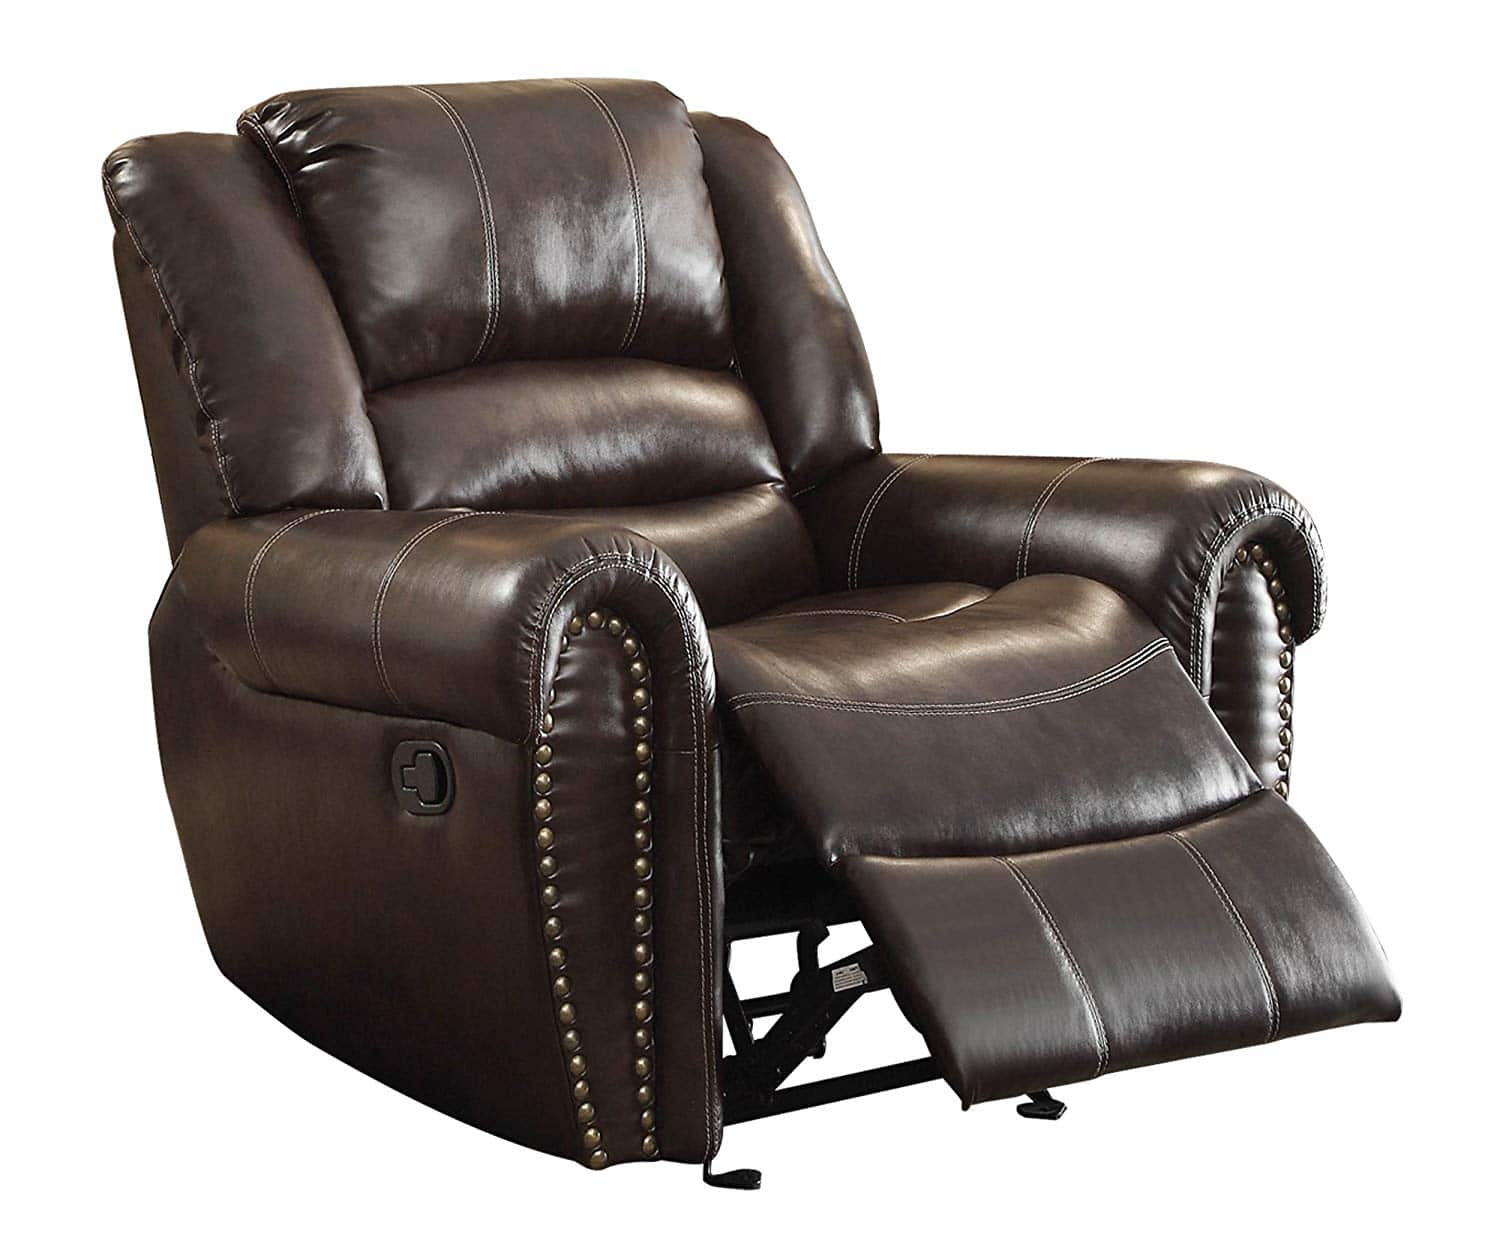 Homelegance 9668BRW-1 Glider Reclining Chair, Brown Bonded Leather